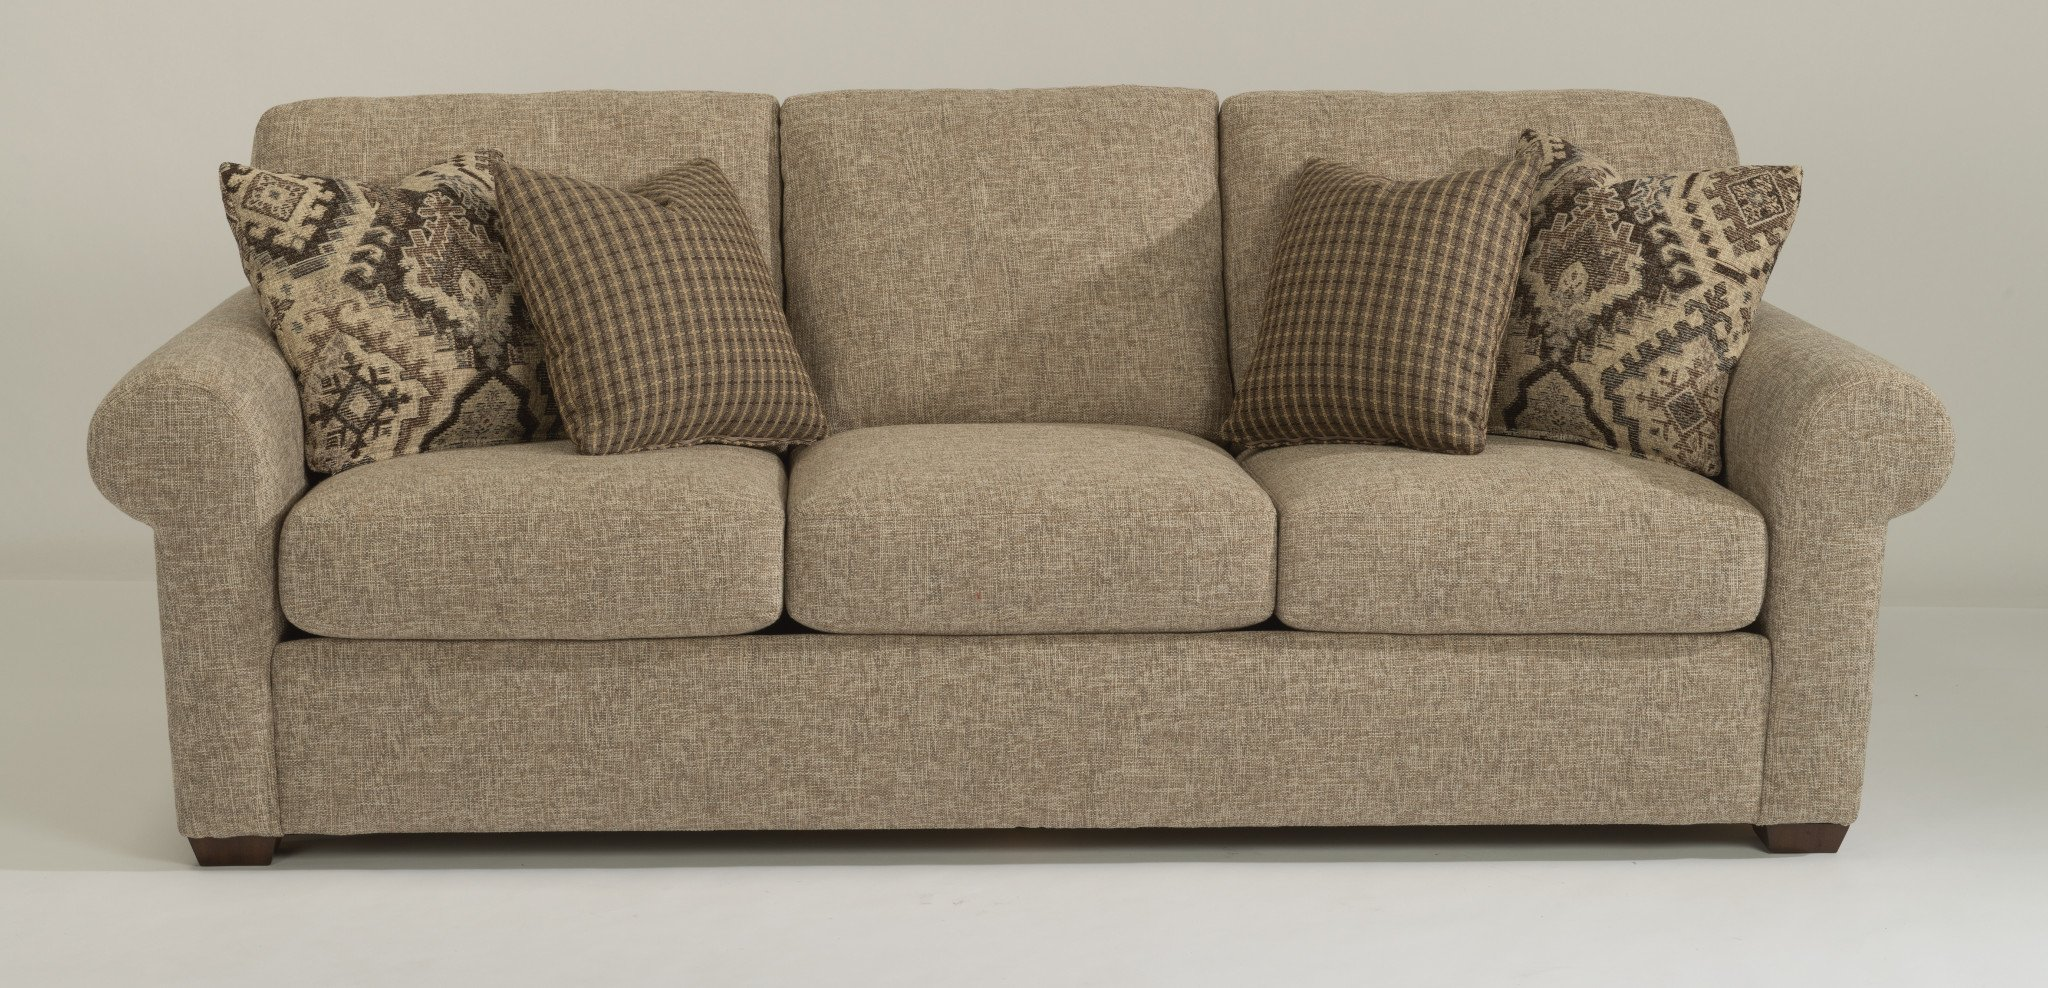 Randall Sofa Group Adirondack Furniture